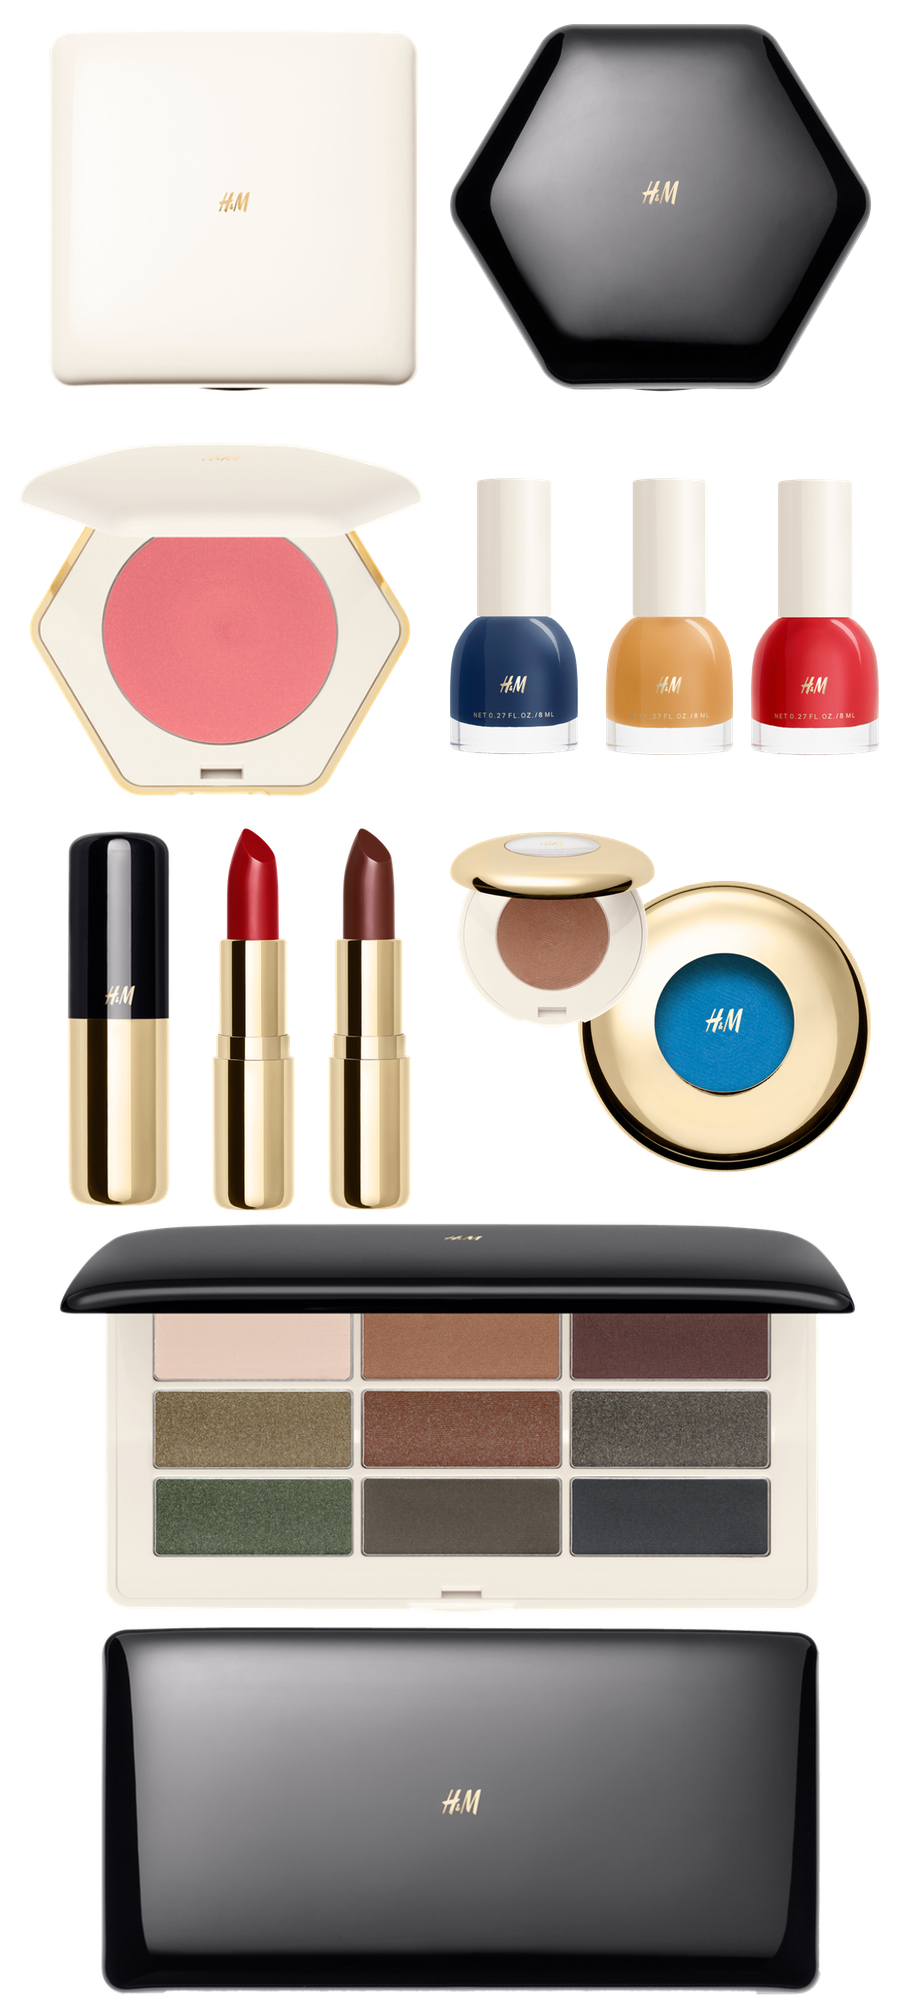 hm_beauty_collection_aw2015